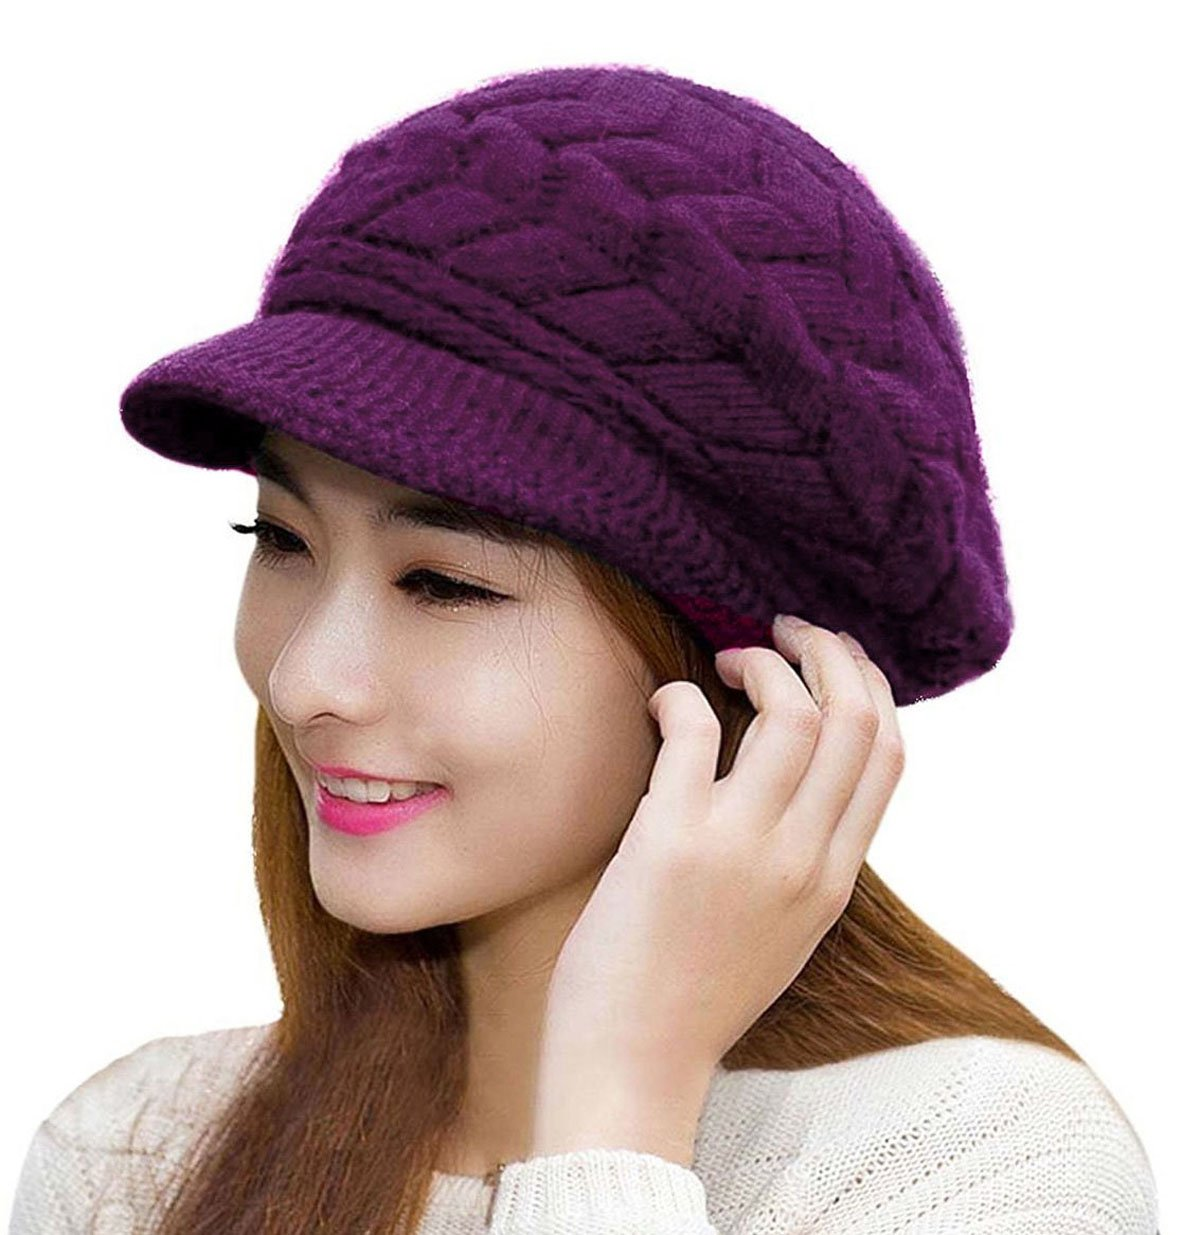 2f8d48be9db041 Galleon - HindaWi Women Winter Hats Knit Crochet Fashions Snow Warm Cap  With Visor Purple